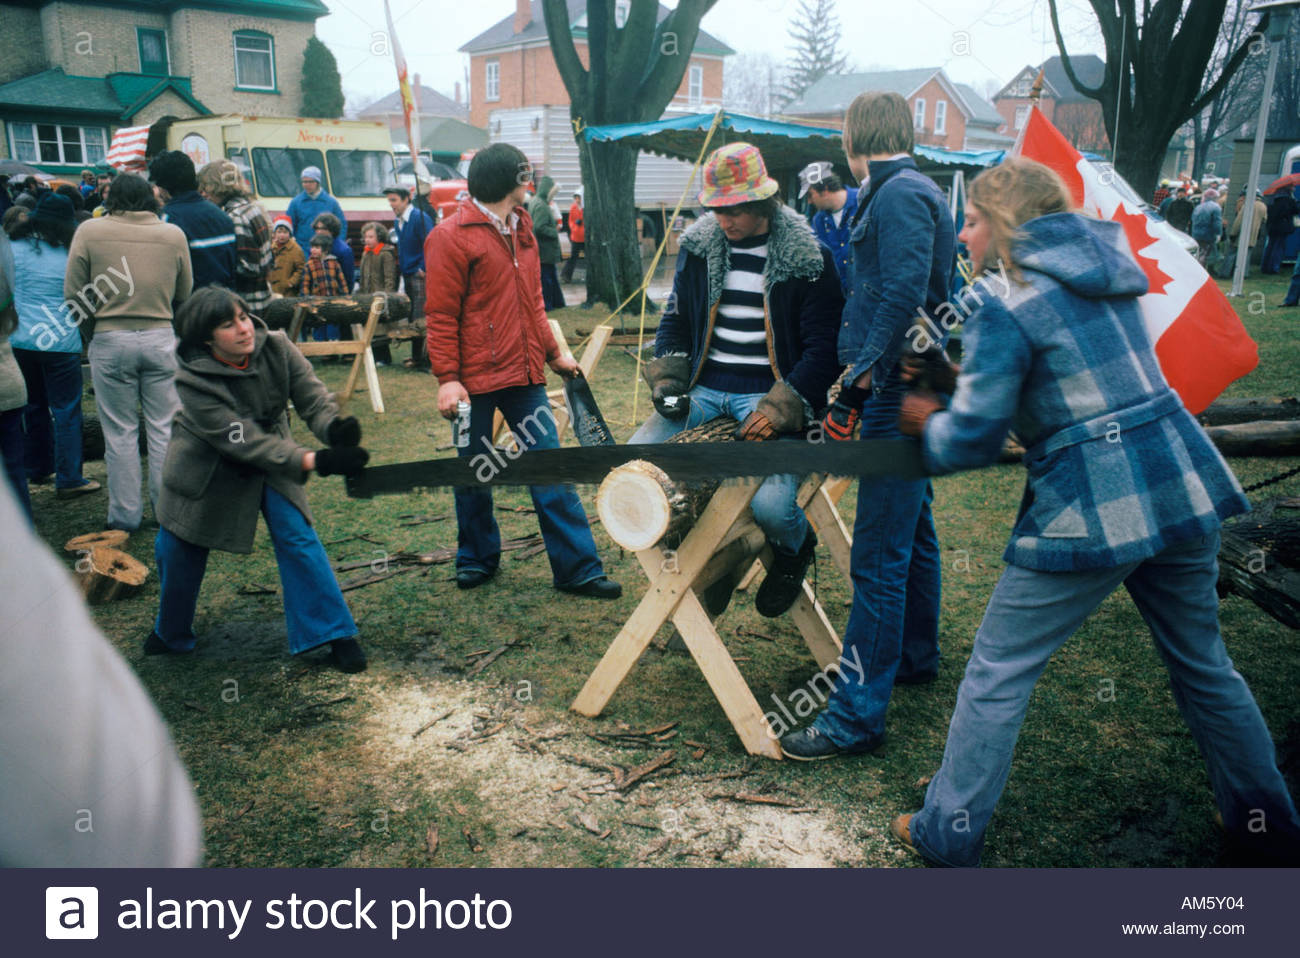 log-sawing-contest-at-the-maple-syrup-fe